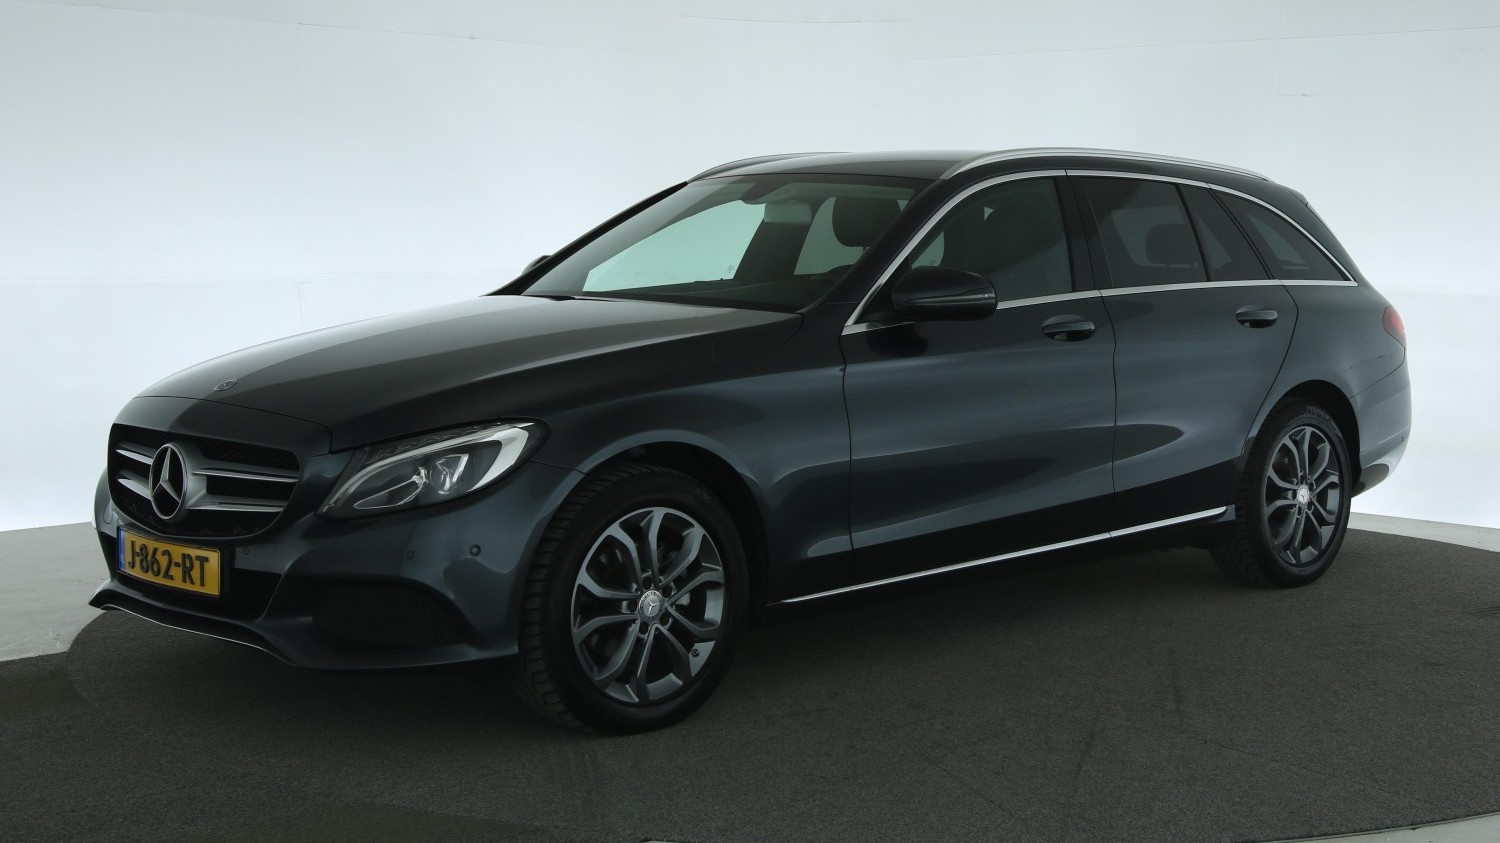 Mercedes-Benz C-klasse Station 2016 J-862-RT 1